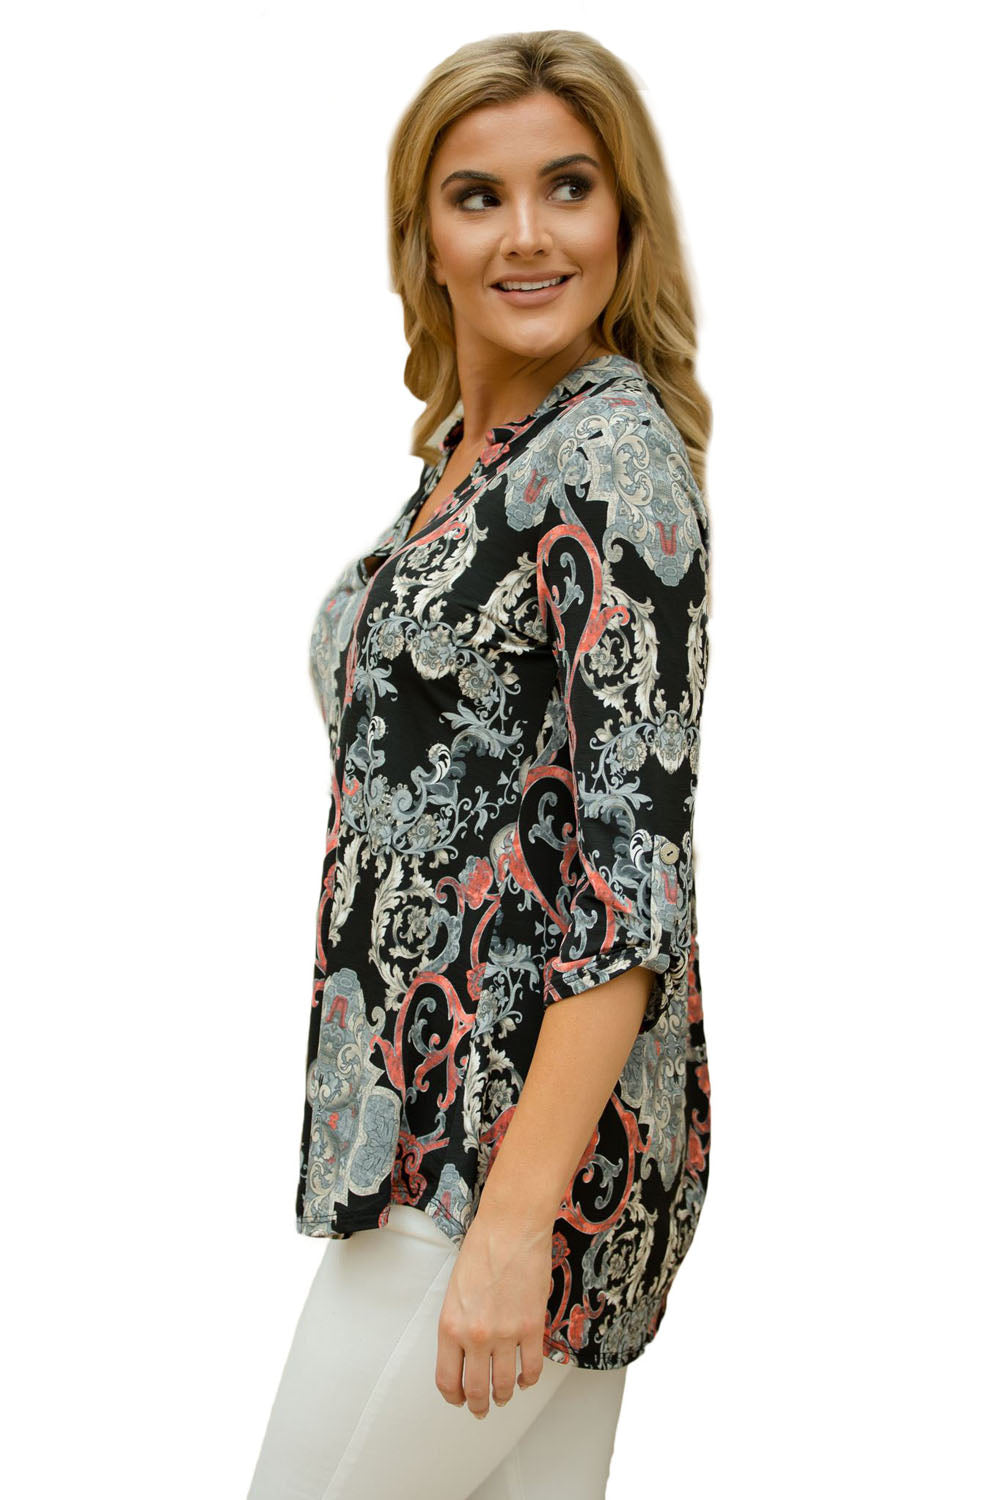 Her Fashion Dusty Blue Magenta Floral Gorgeous Print V Neck Blouse